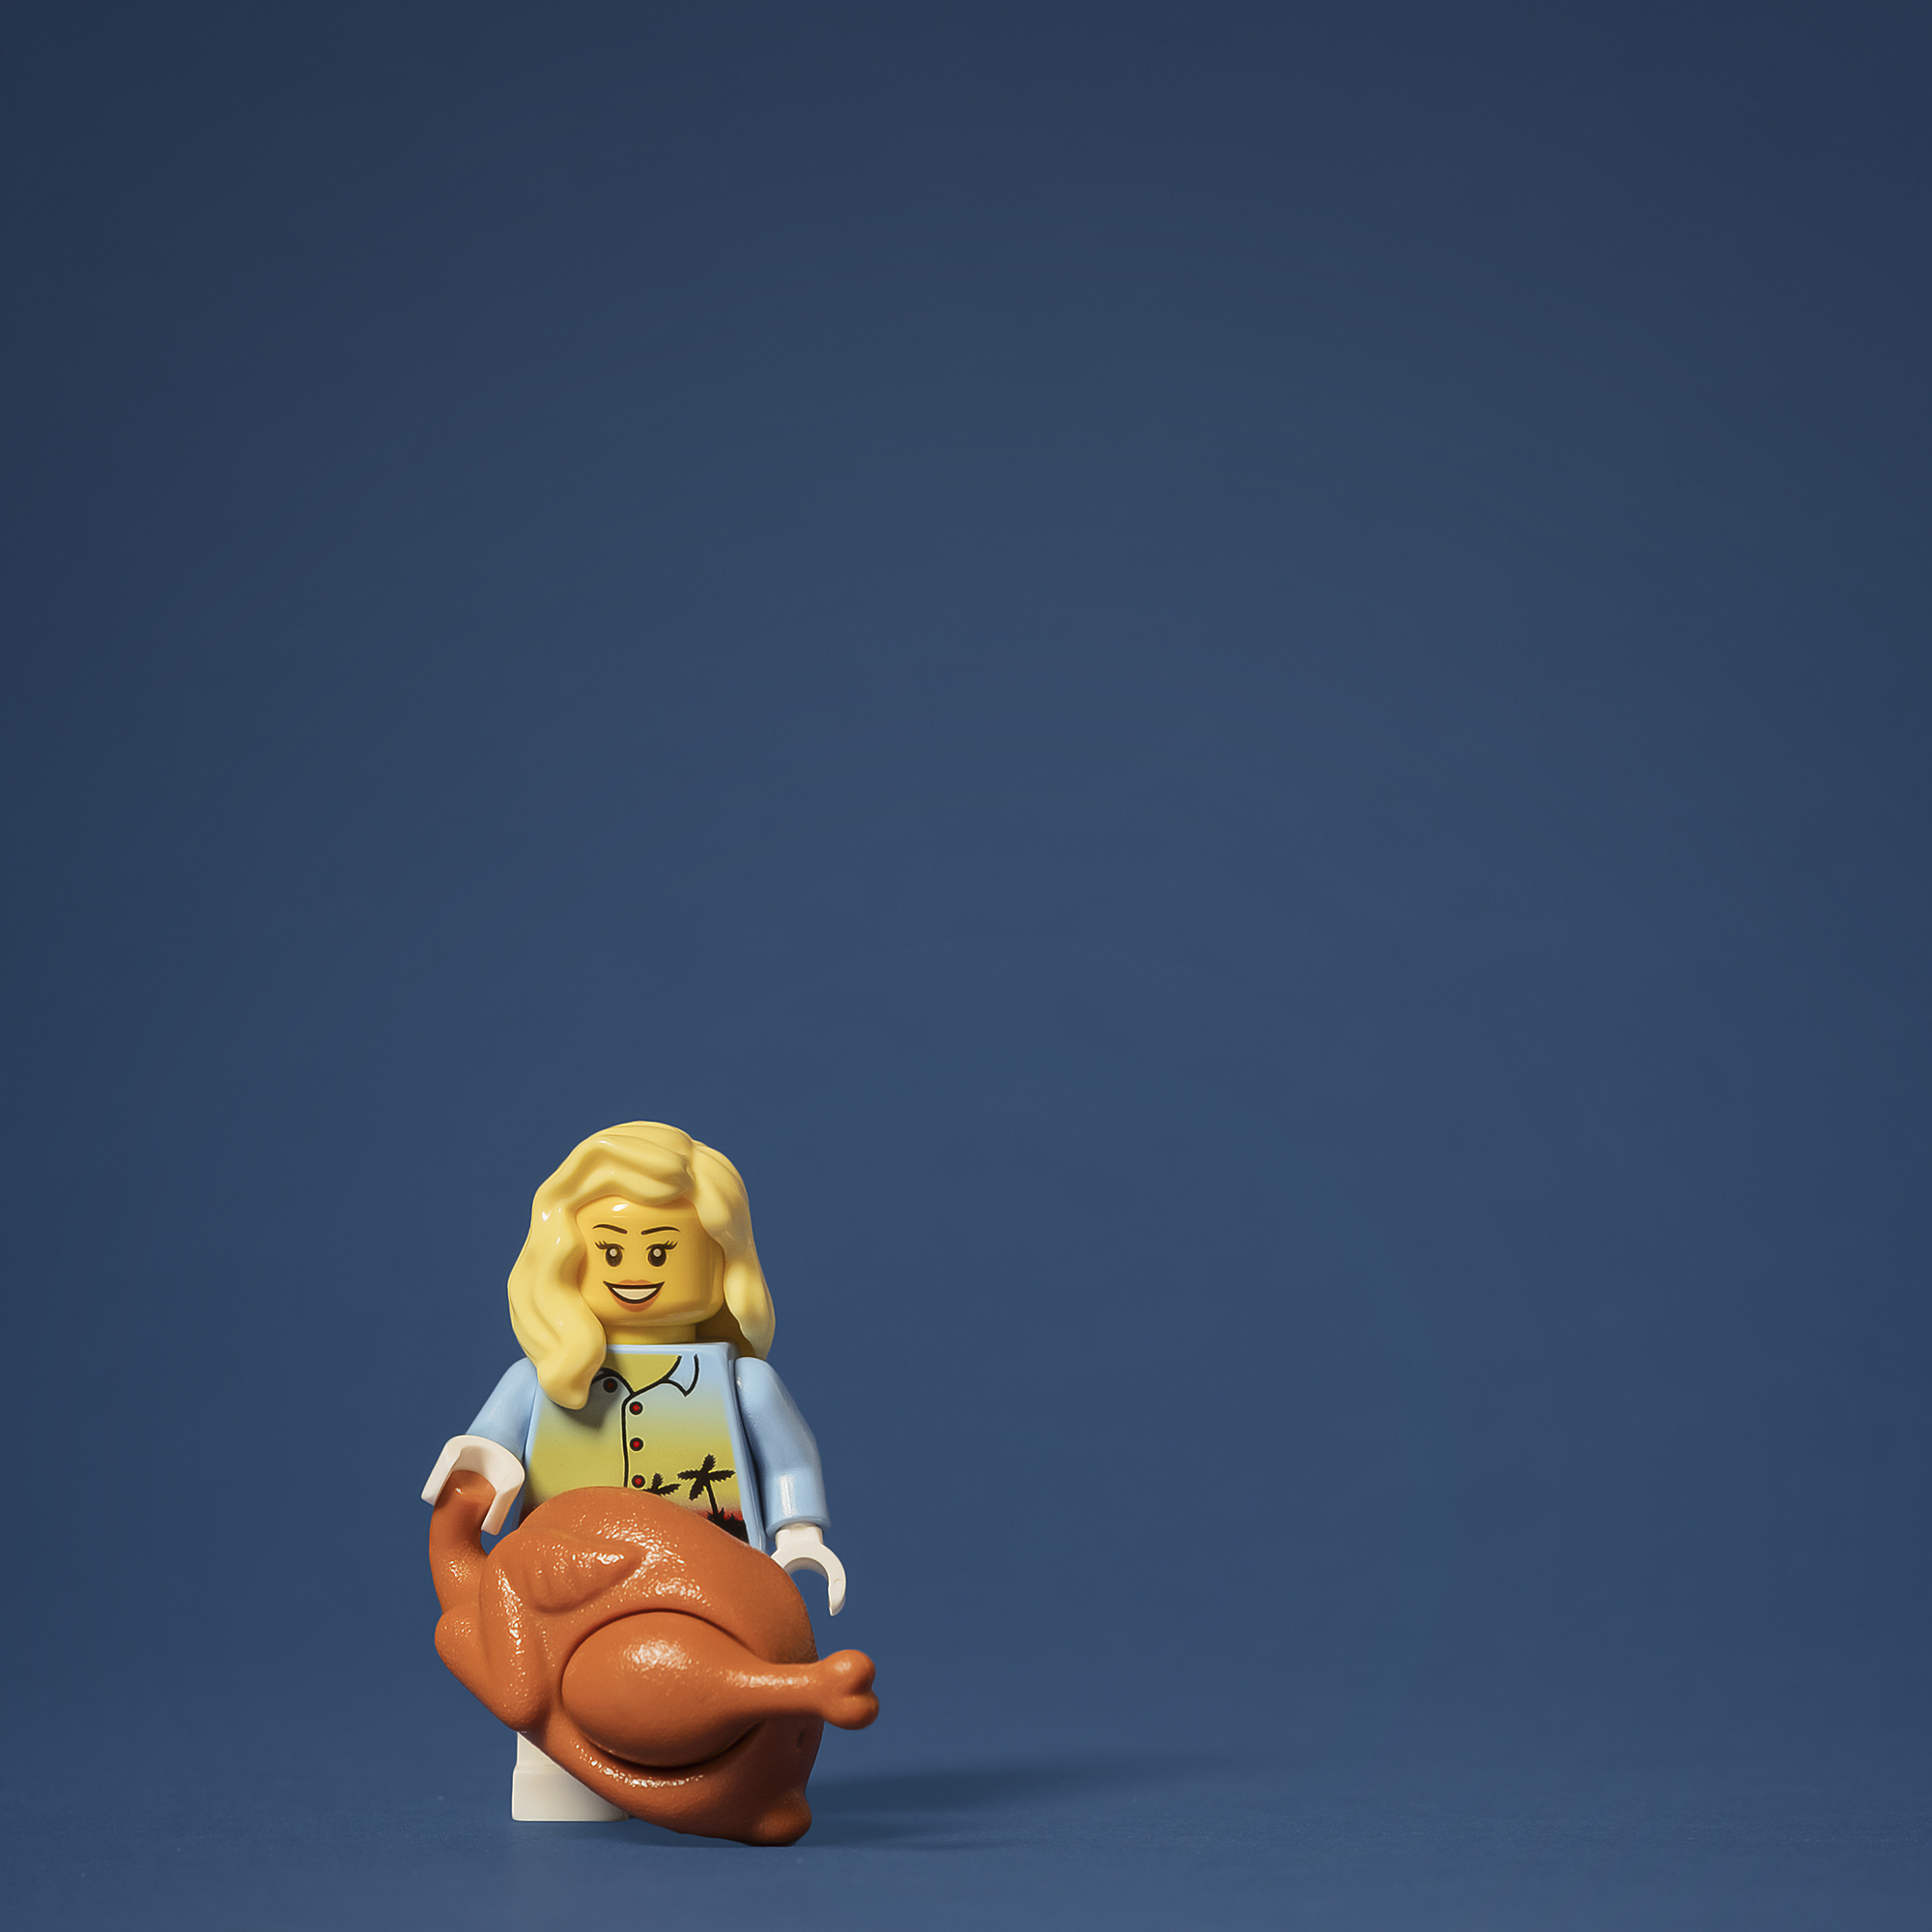 Lego_Photography_Personal_Project_07.jpg